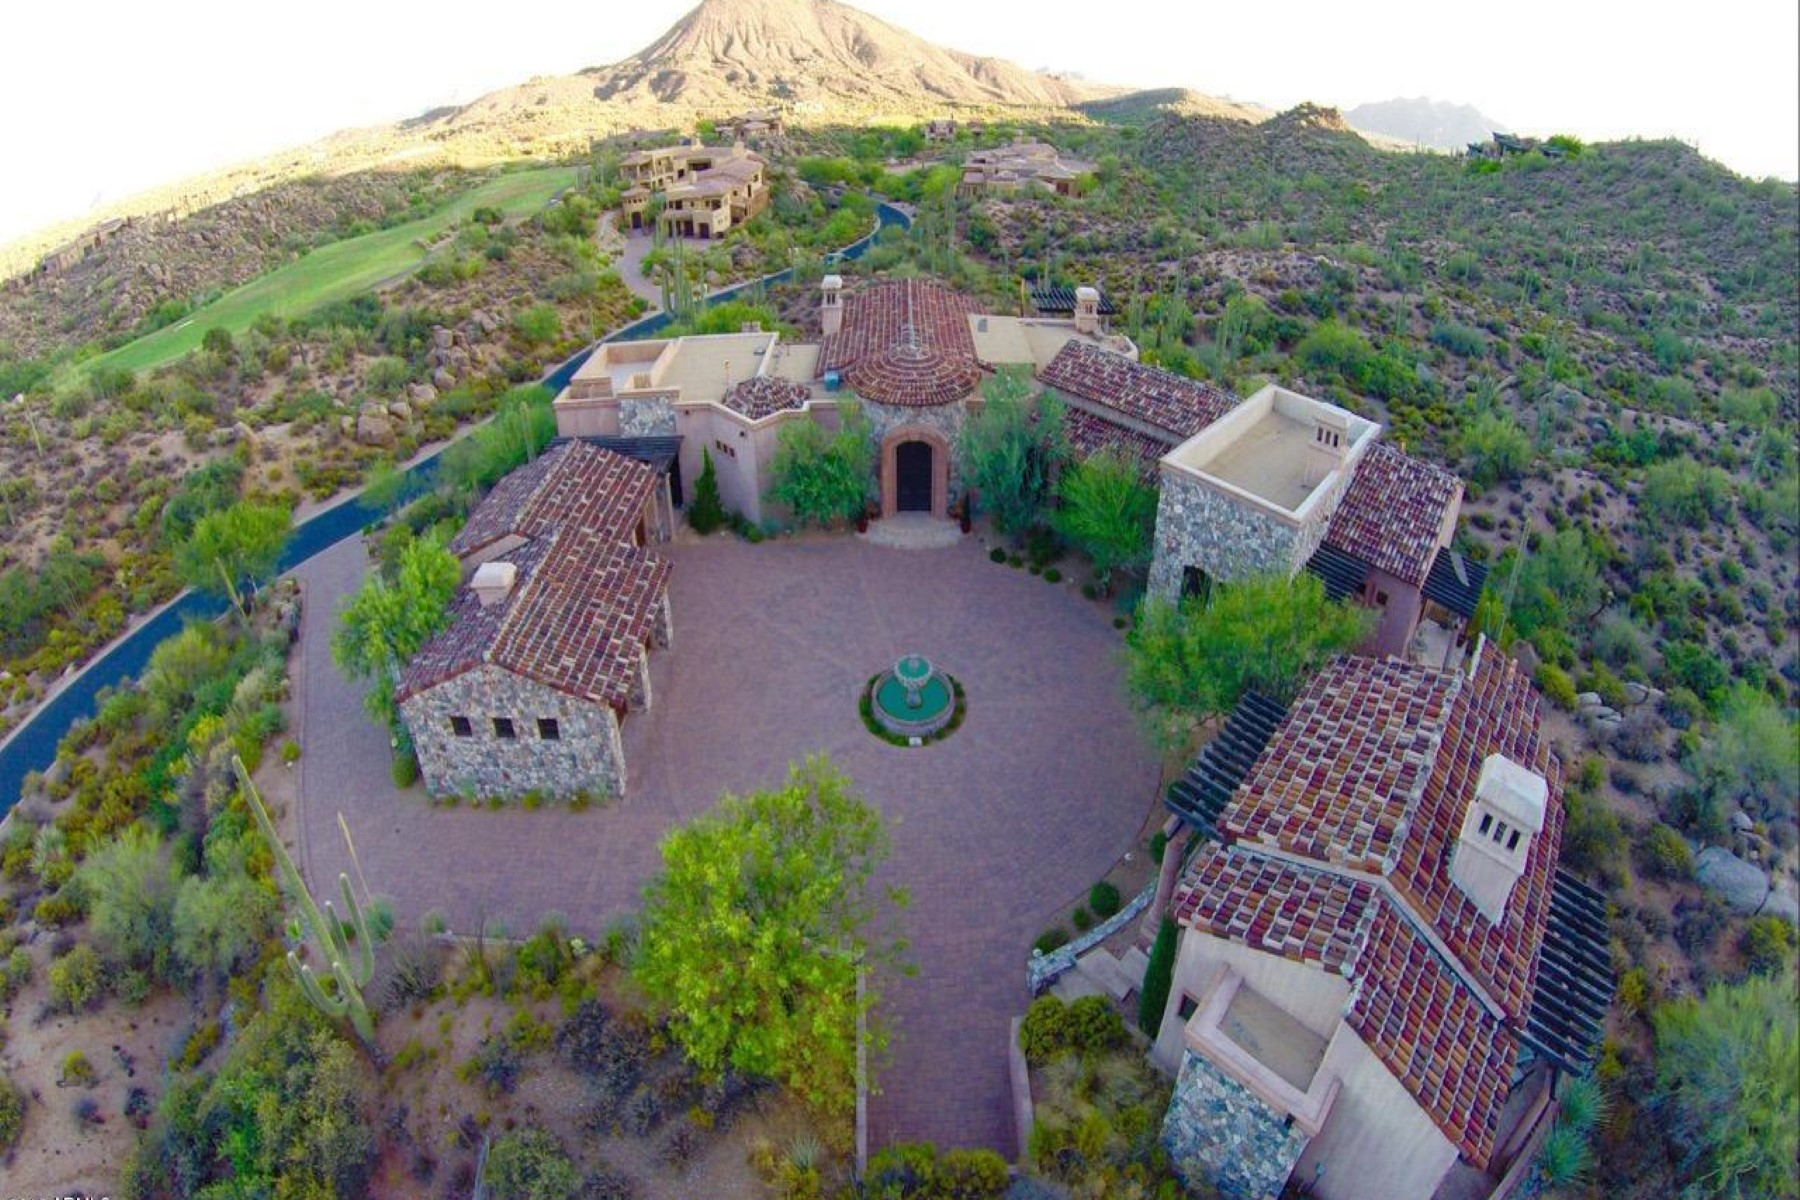 Maison unifamiliale pour l Vente à Beautiful private Tuscan home is situated on 2.2 acres in Saguaro Forest 41324 N 95th Street Scottsdale, Arizona, 85262 États-Unis